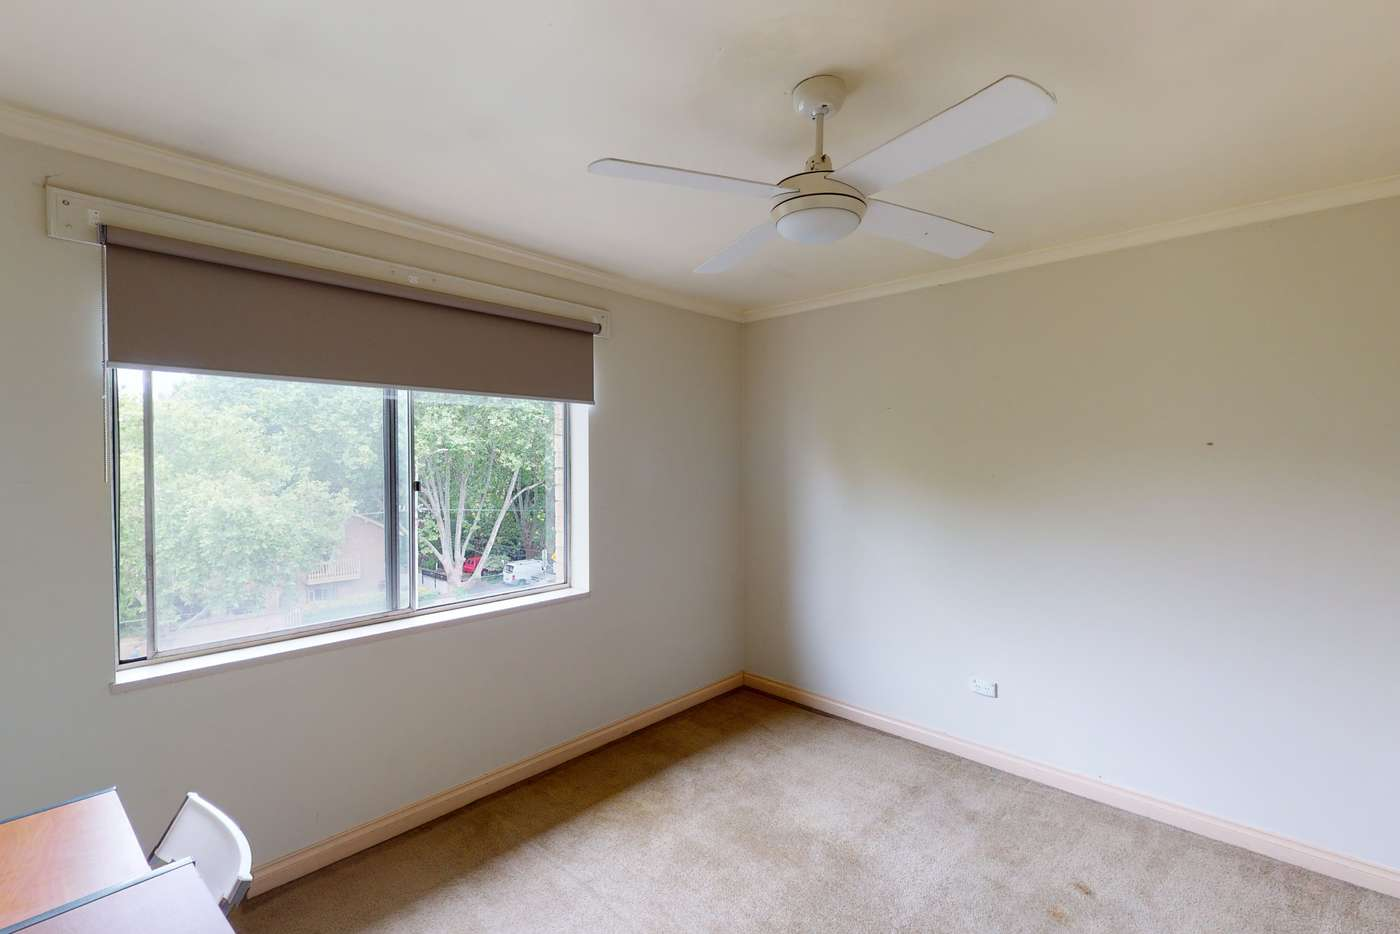 Sixth view of Homely apartment listing, 27/302 Abbotsford Street, North Melbourne VIC 3051